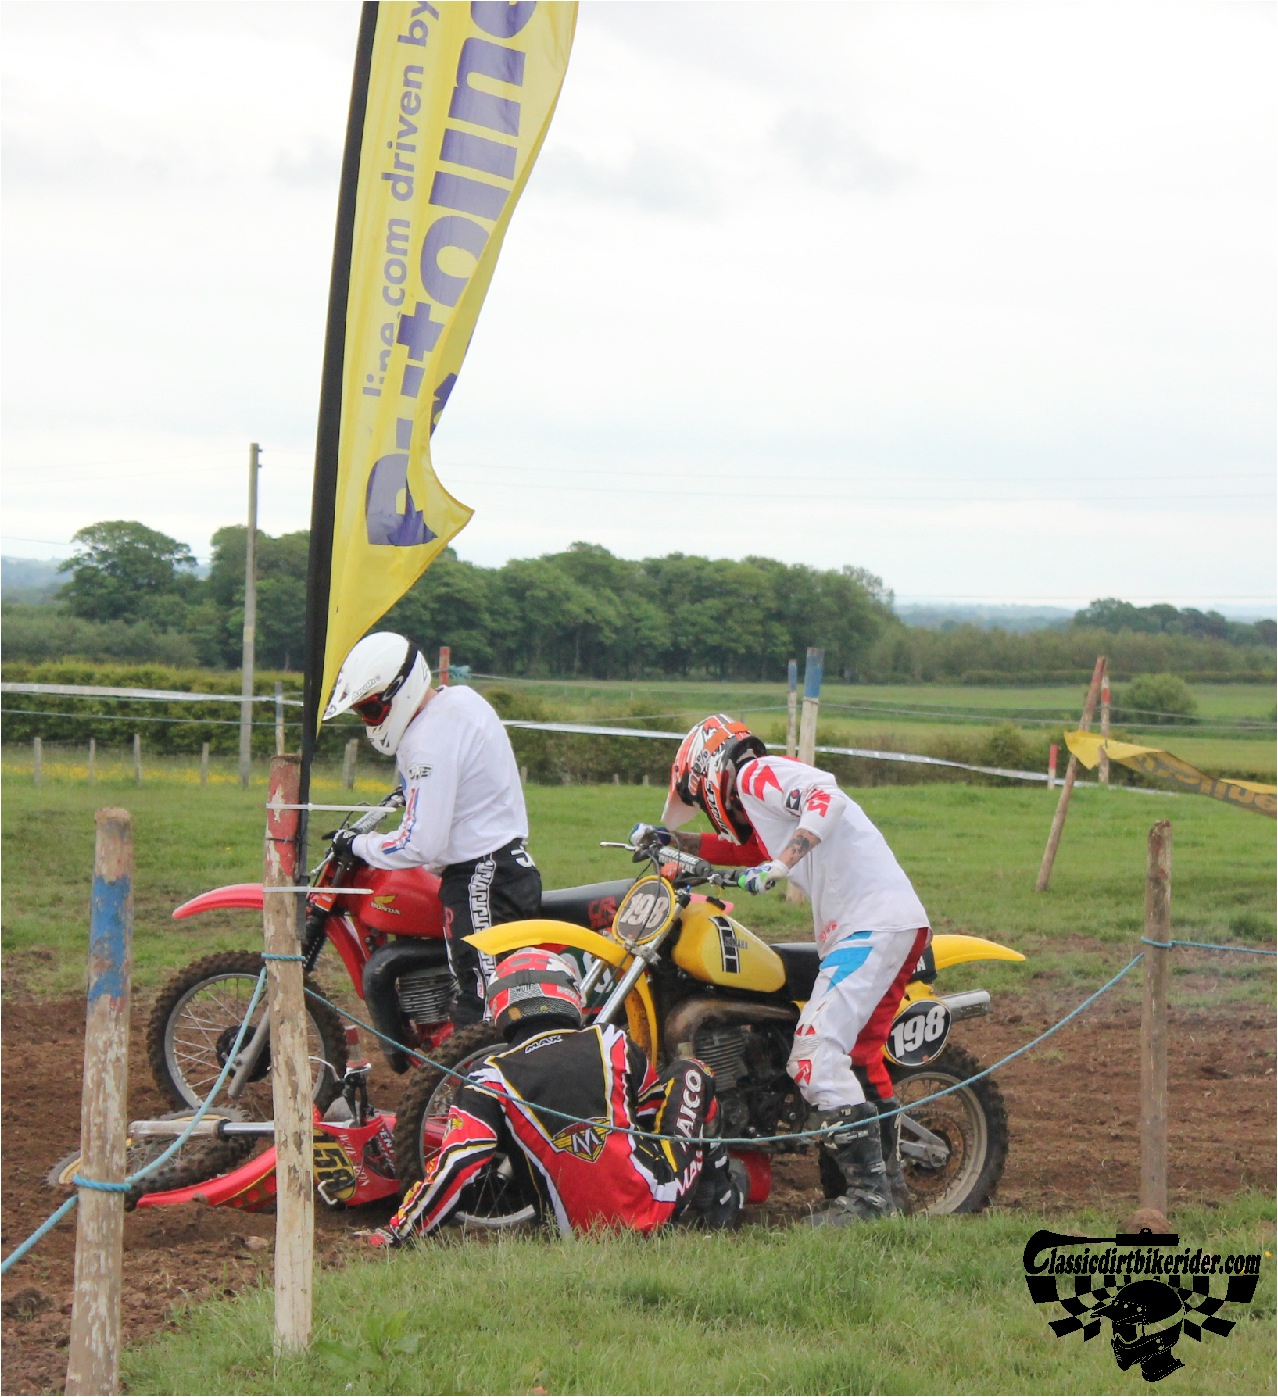 classicdirtbikerider.com-national-twinshock-championship-2015-Garstang-the first turn pile up